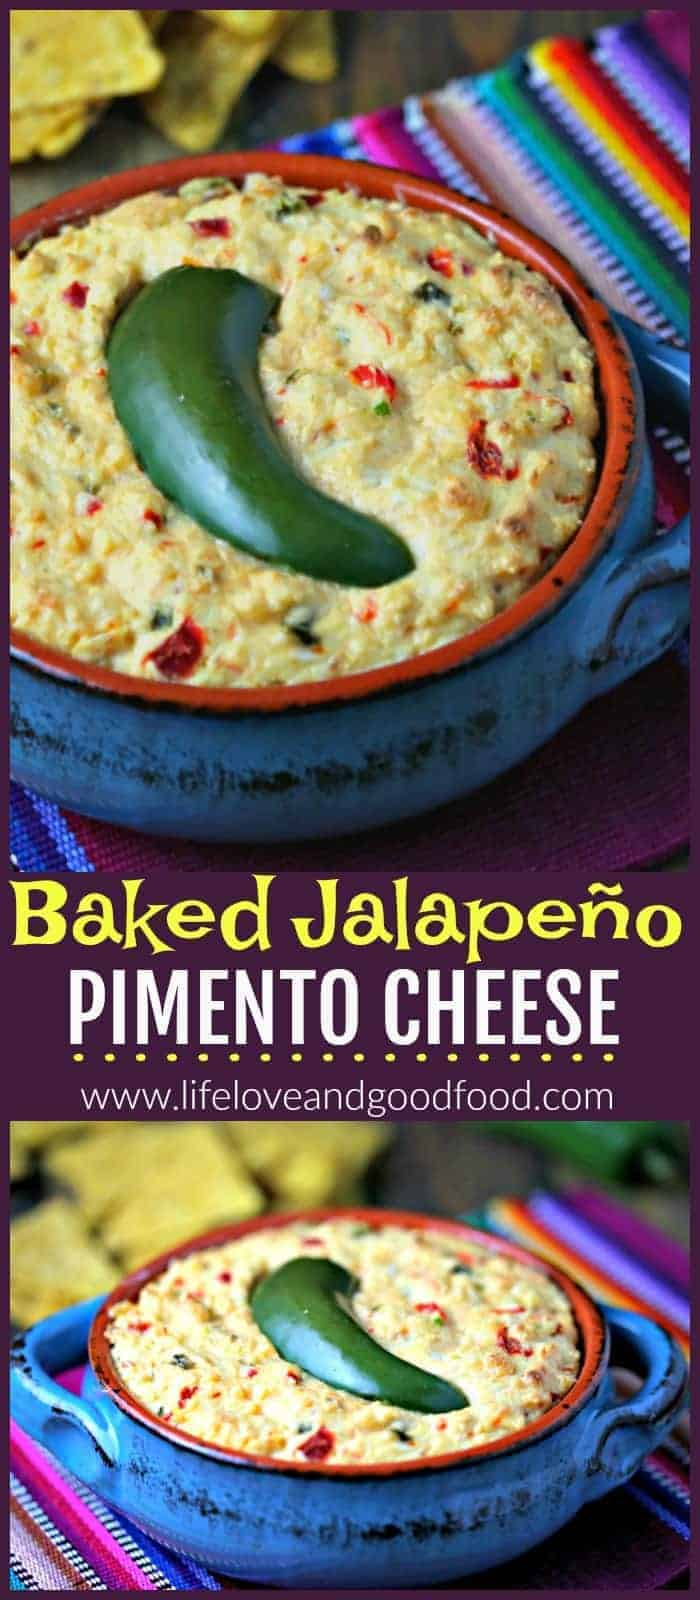 Baked Jalapeño Pimento Cheese - Adjust the heat to your taste by adding more roasted jalapeño peppers in this lightened up homemade pimento cheese. #appetizer #dip #cheesedip